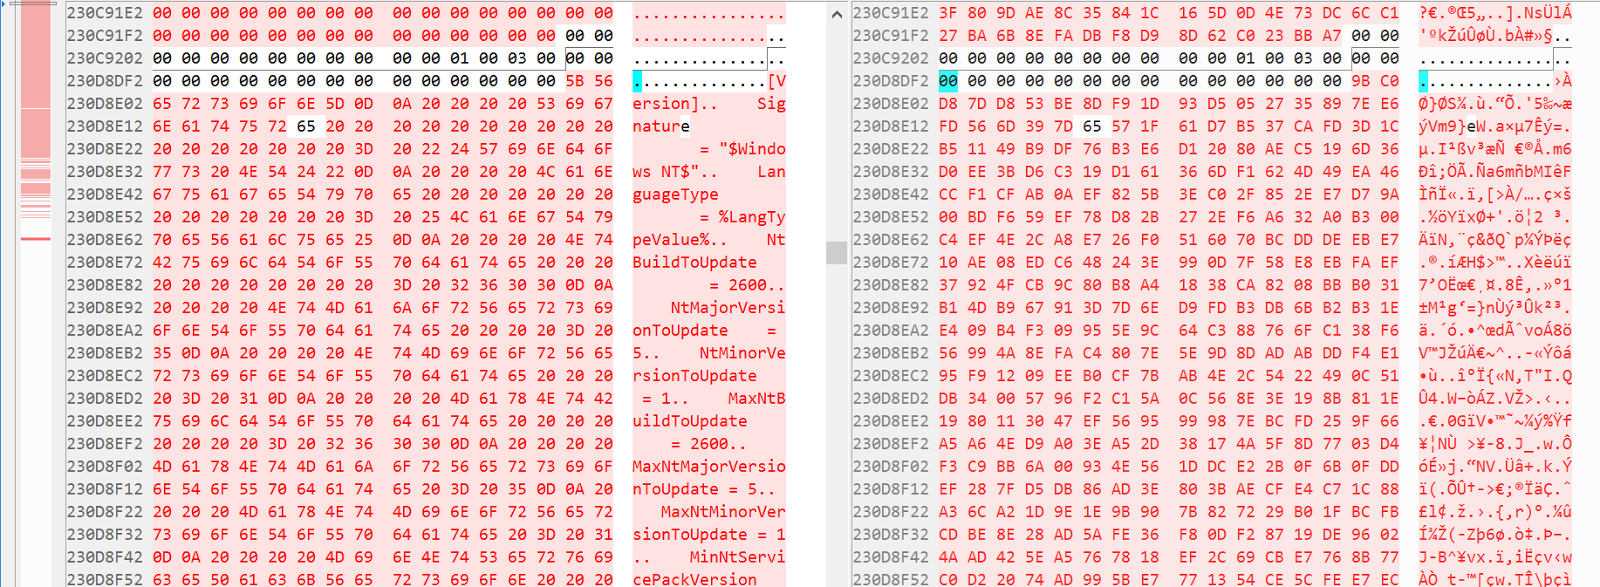 Full Decryption of Systems Encrypted by Petya/NotPetya